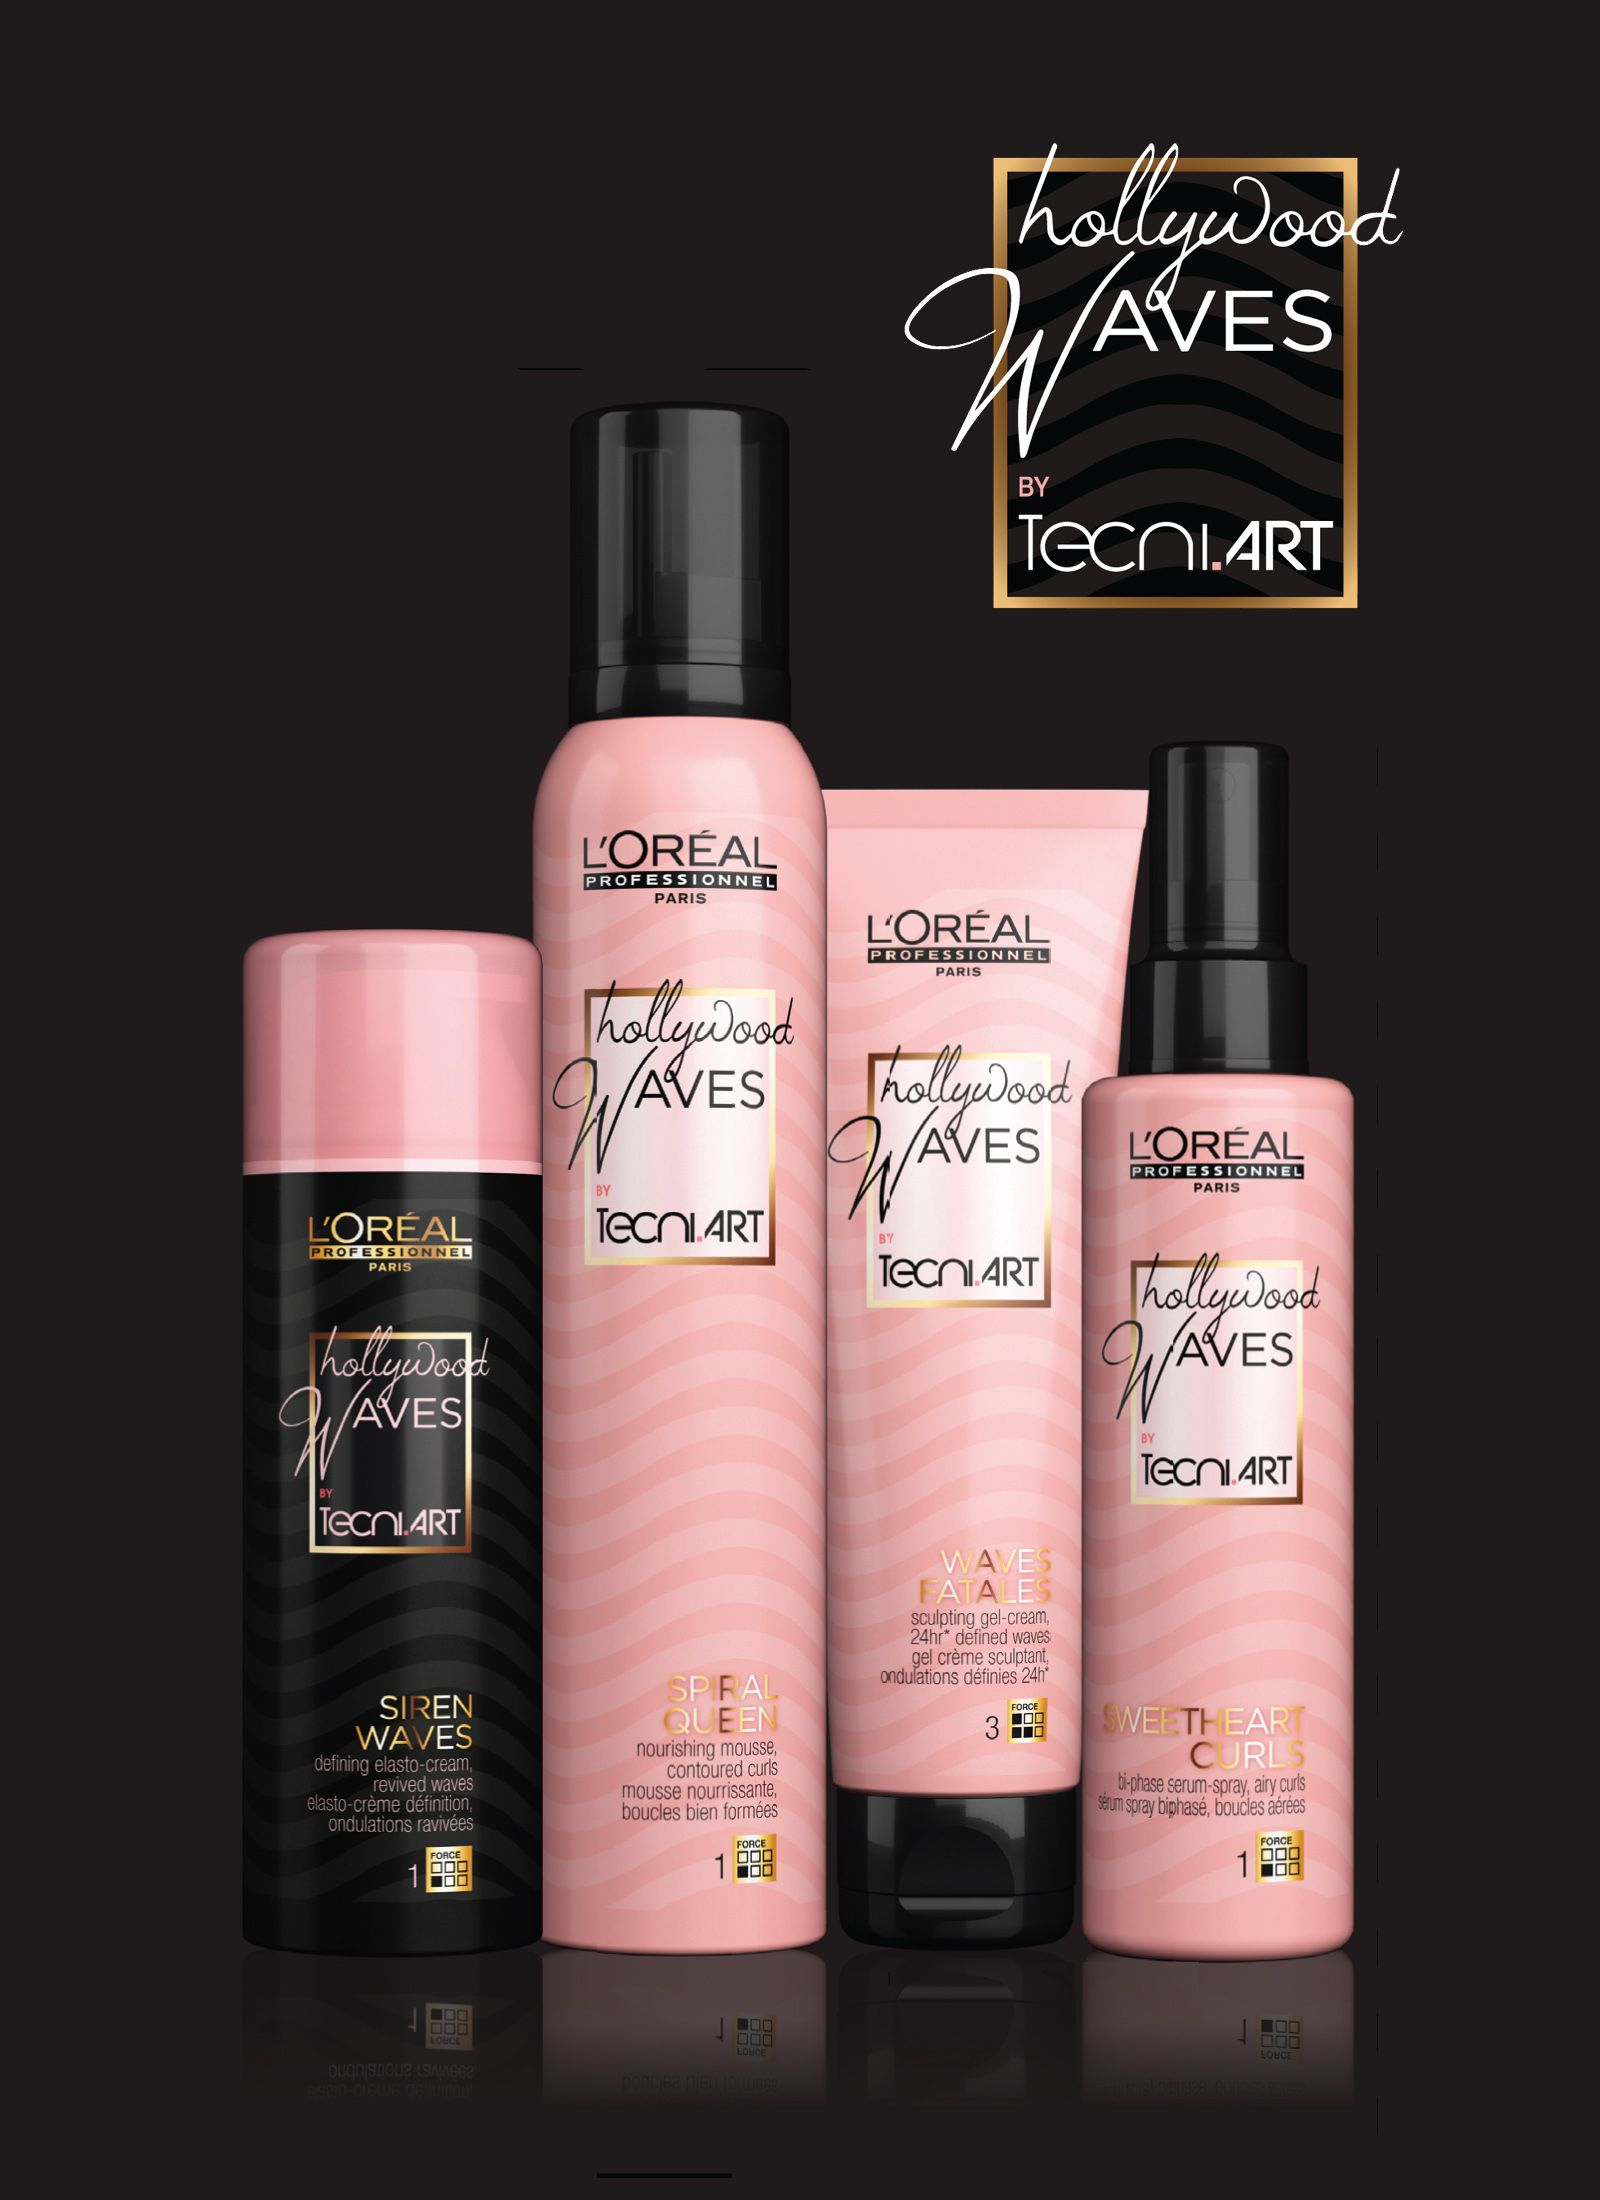 Hollywood Waves – L'Oreal Professionnel